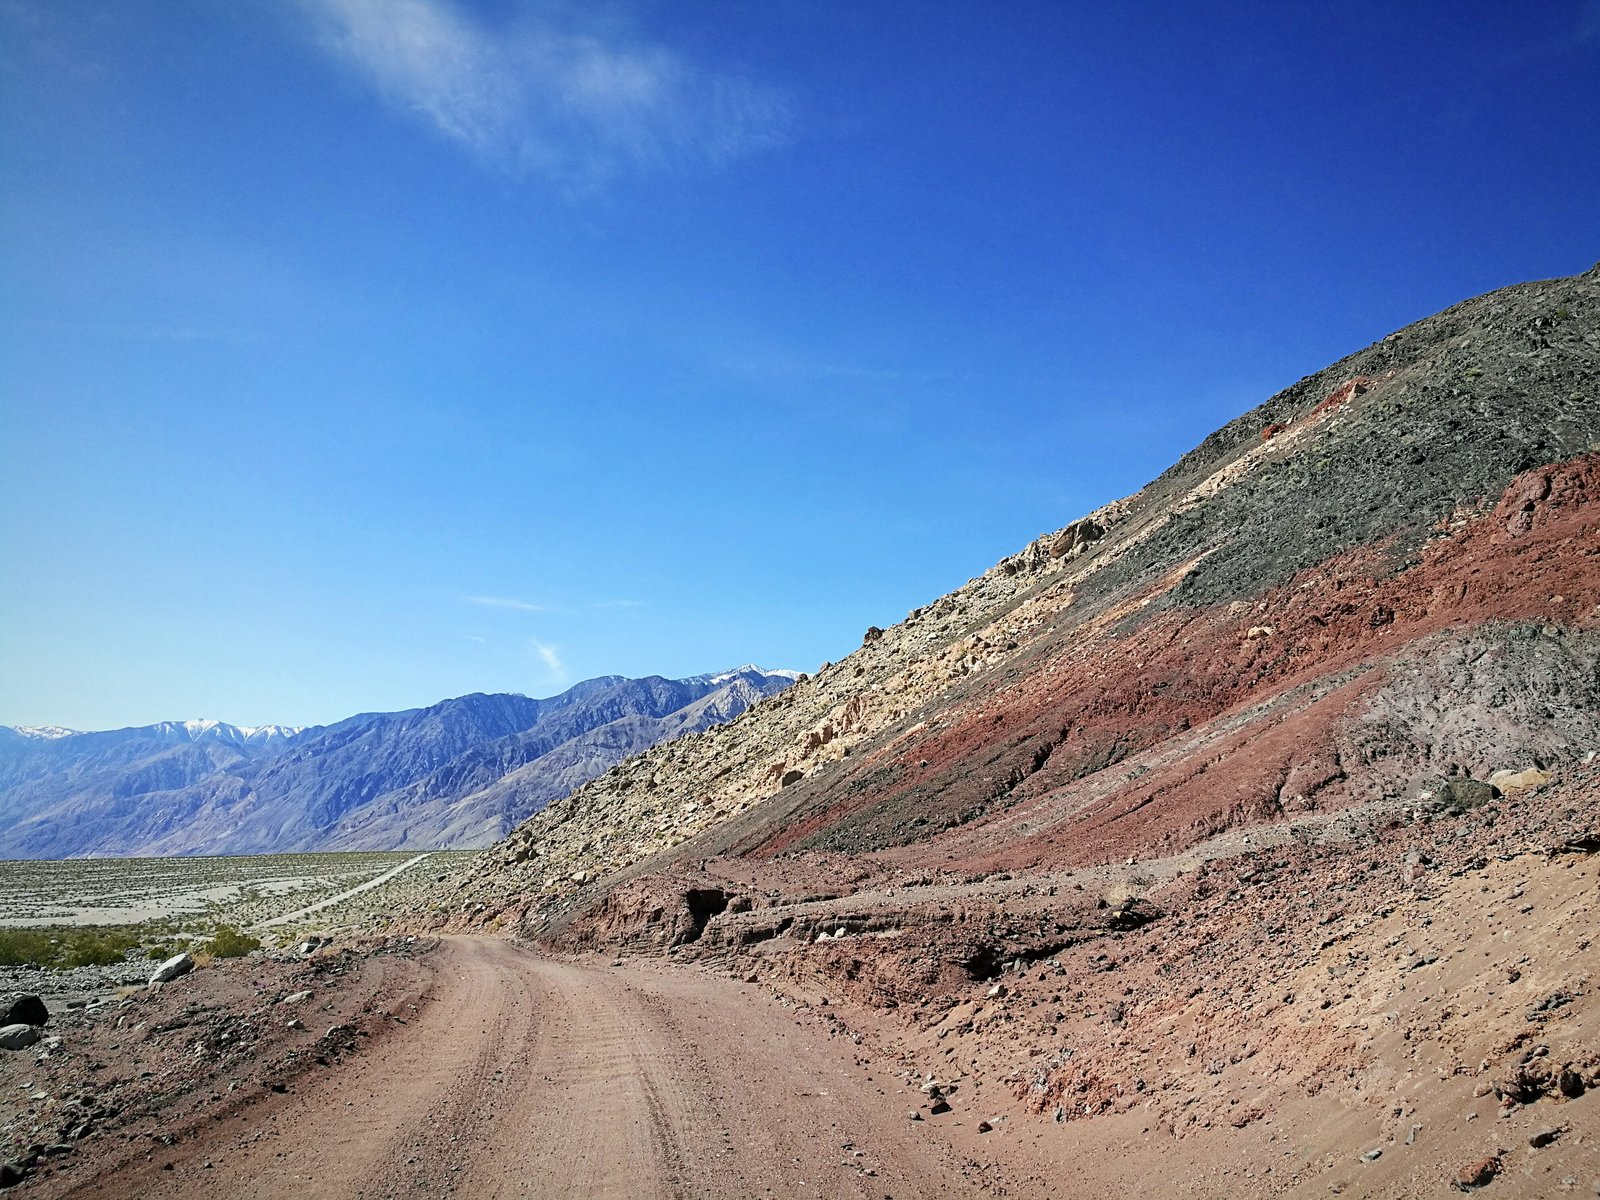 img_20170415_211340-jpg.37797_Where my Heart Lives; Dakotas to Death Valley_Travel Stories_Squat the Planet_9:09 AM